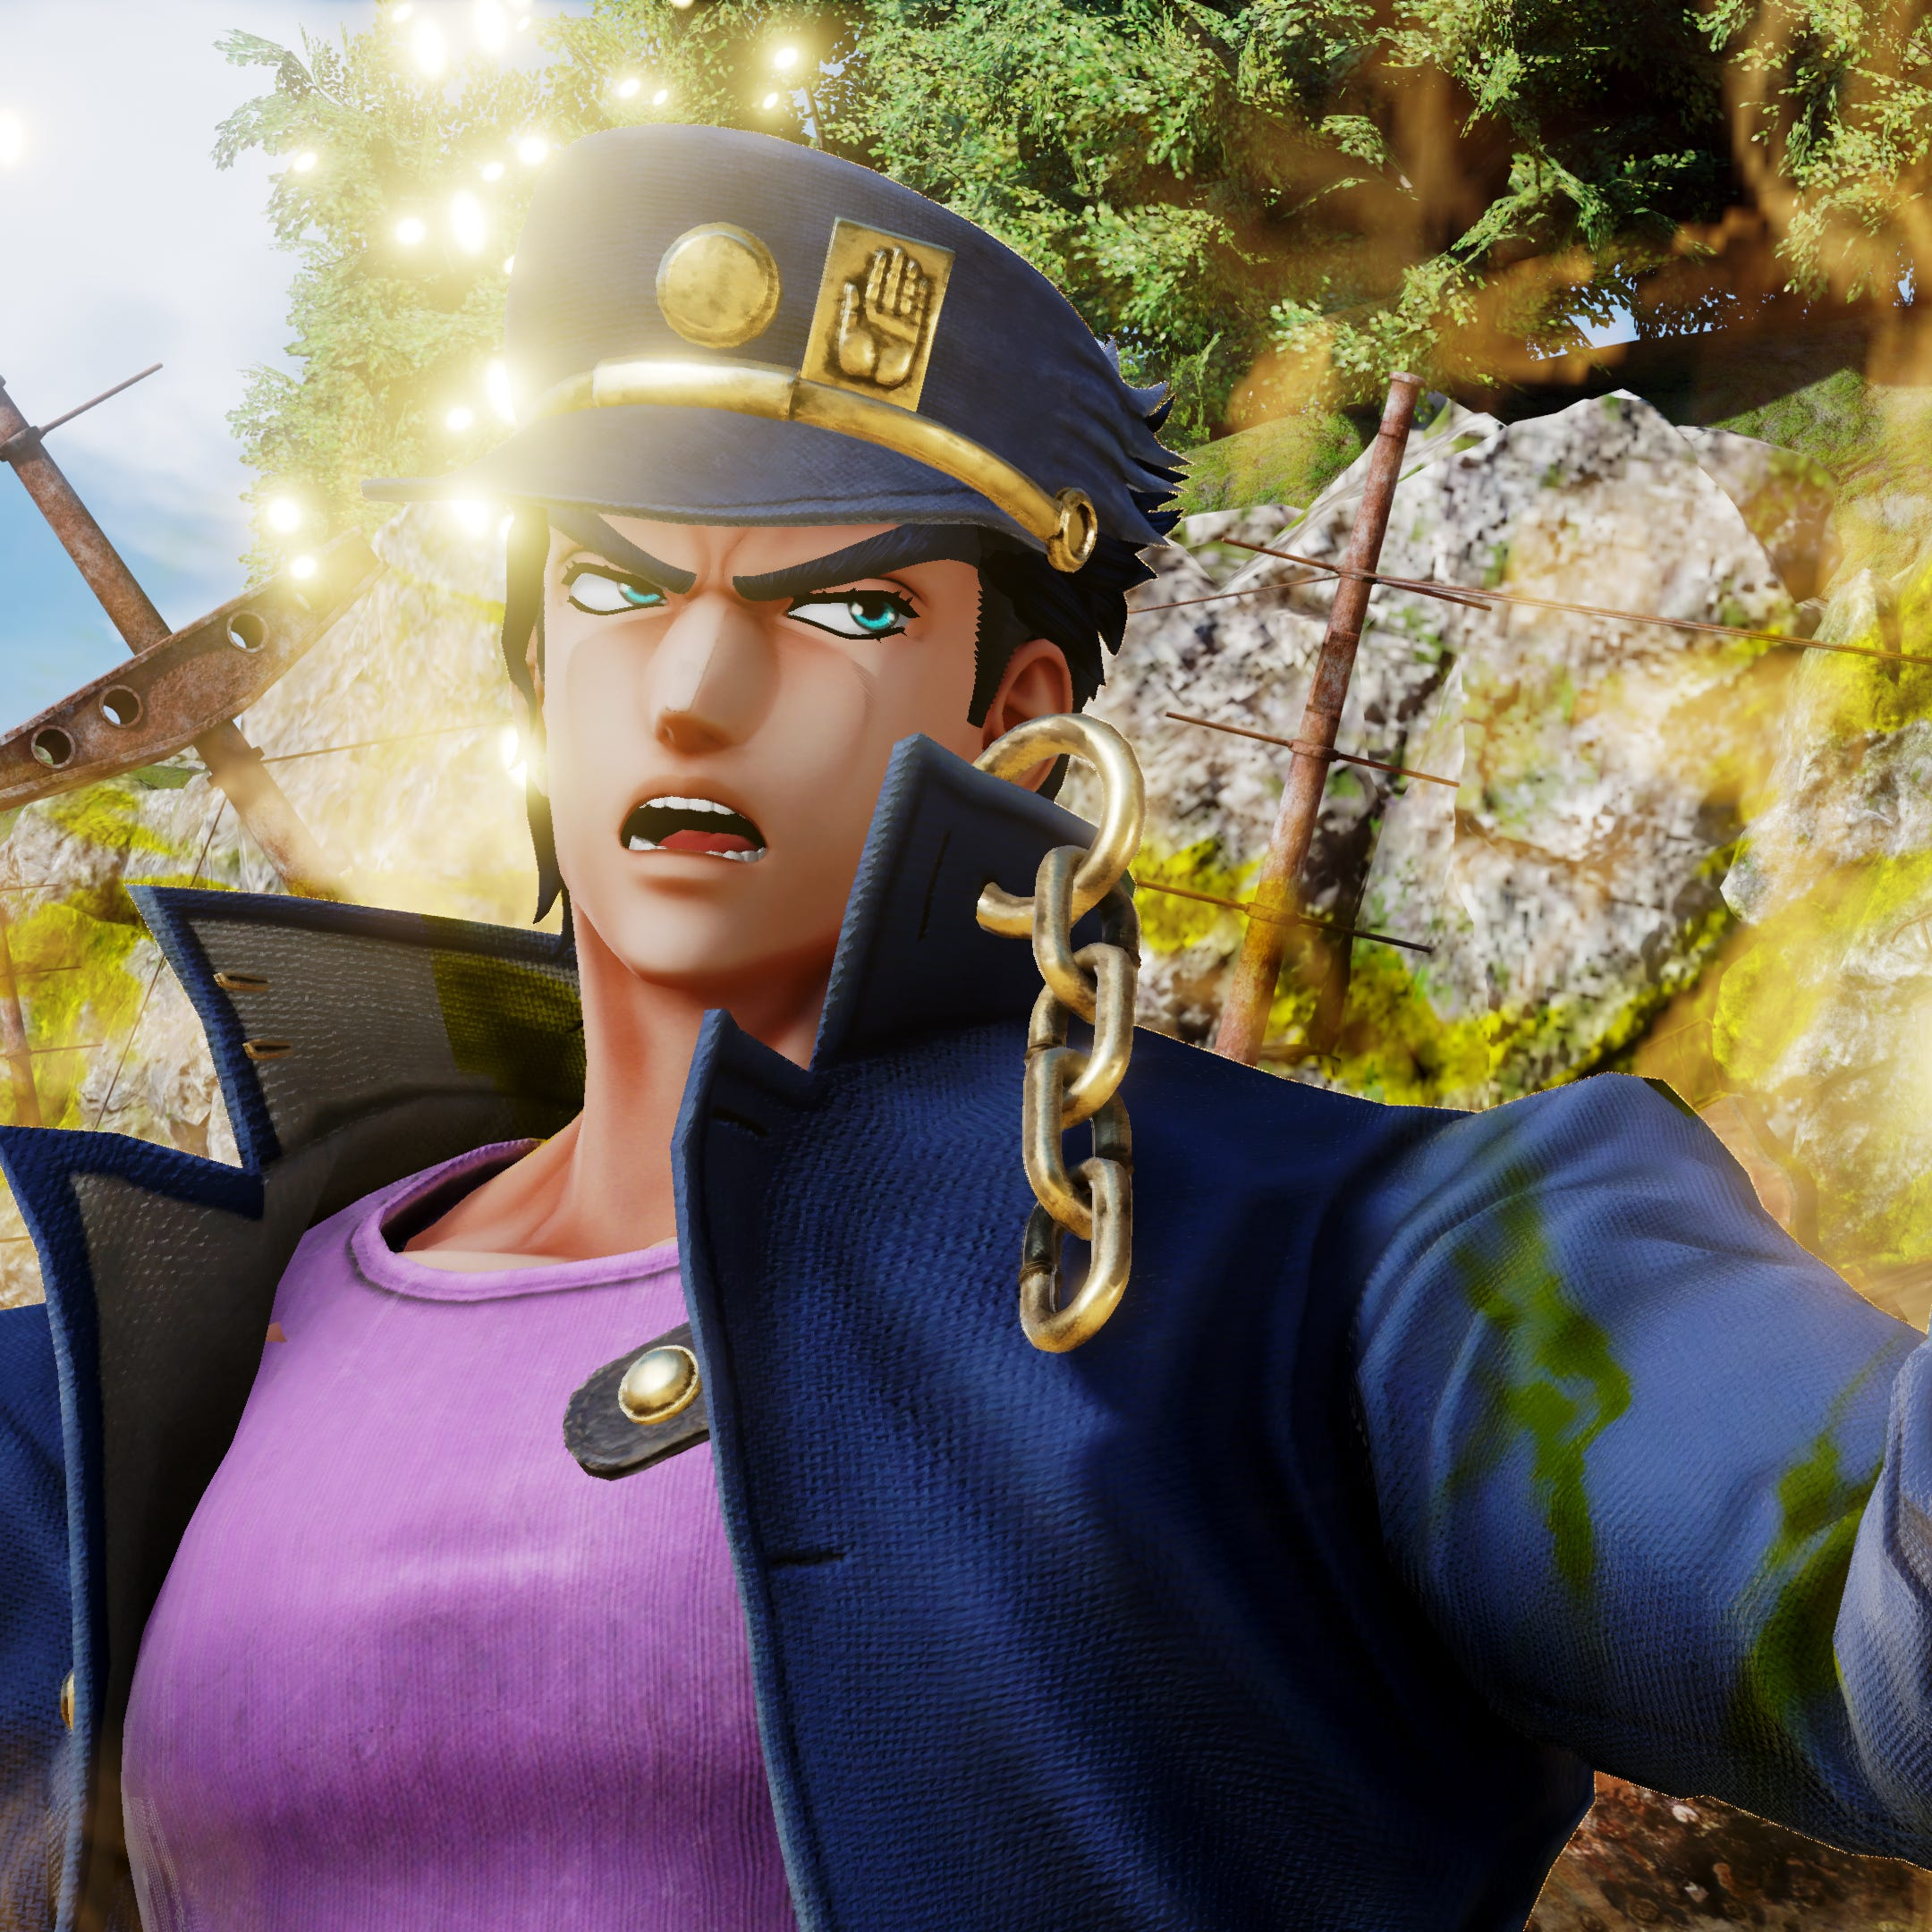 Yare yare daze: Jump Force review | Technobubble